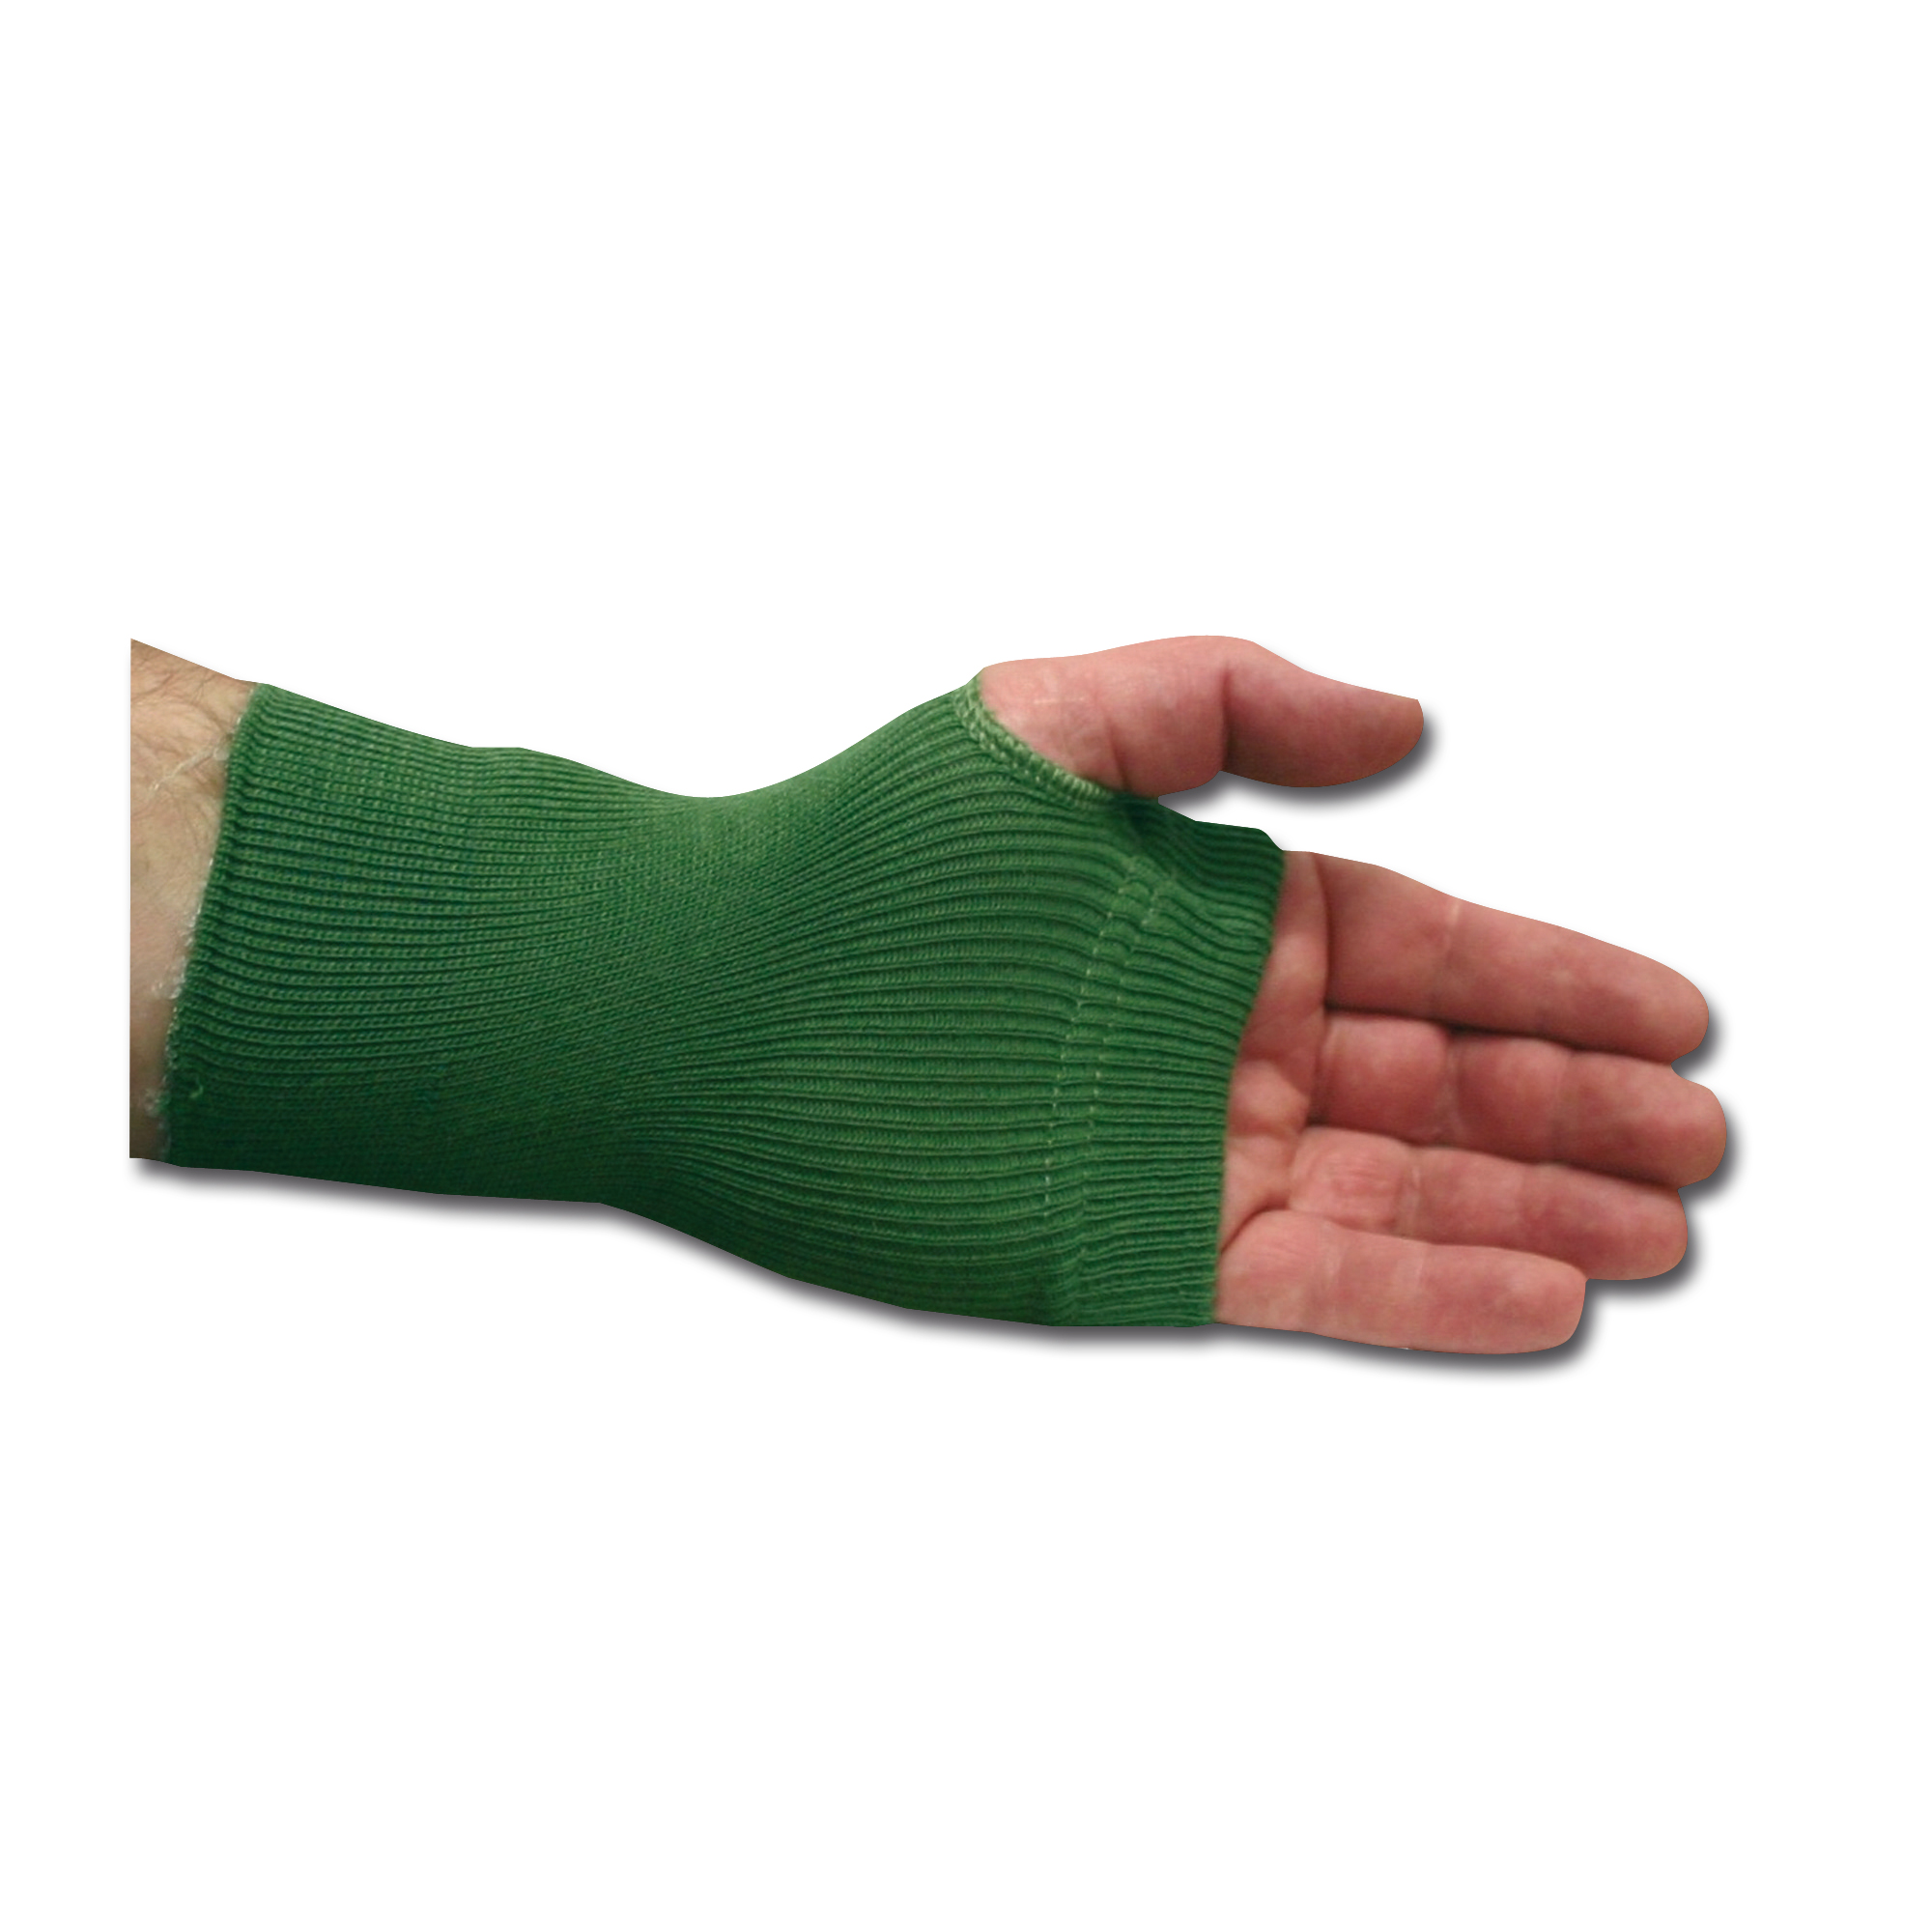 Thermal Wrist Warmers